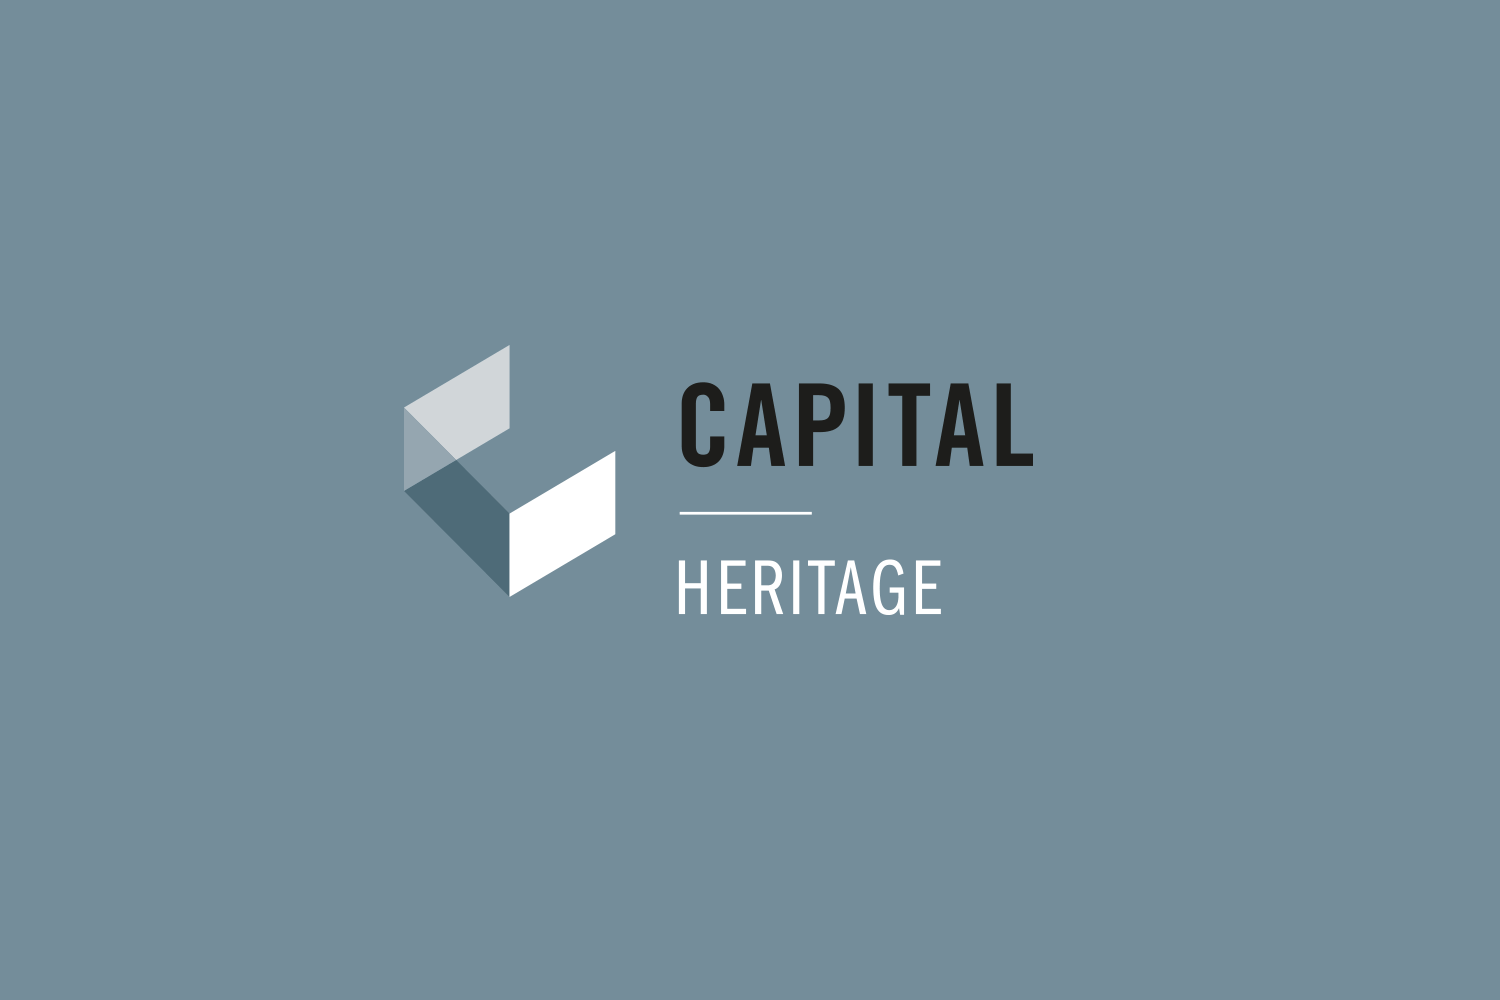 Capital-Heritage-Thumb